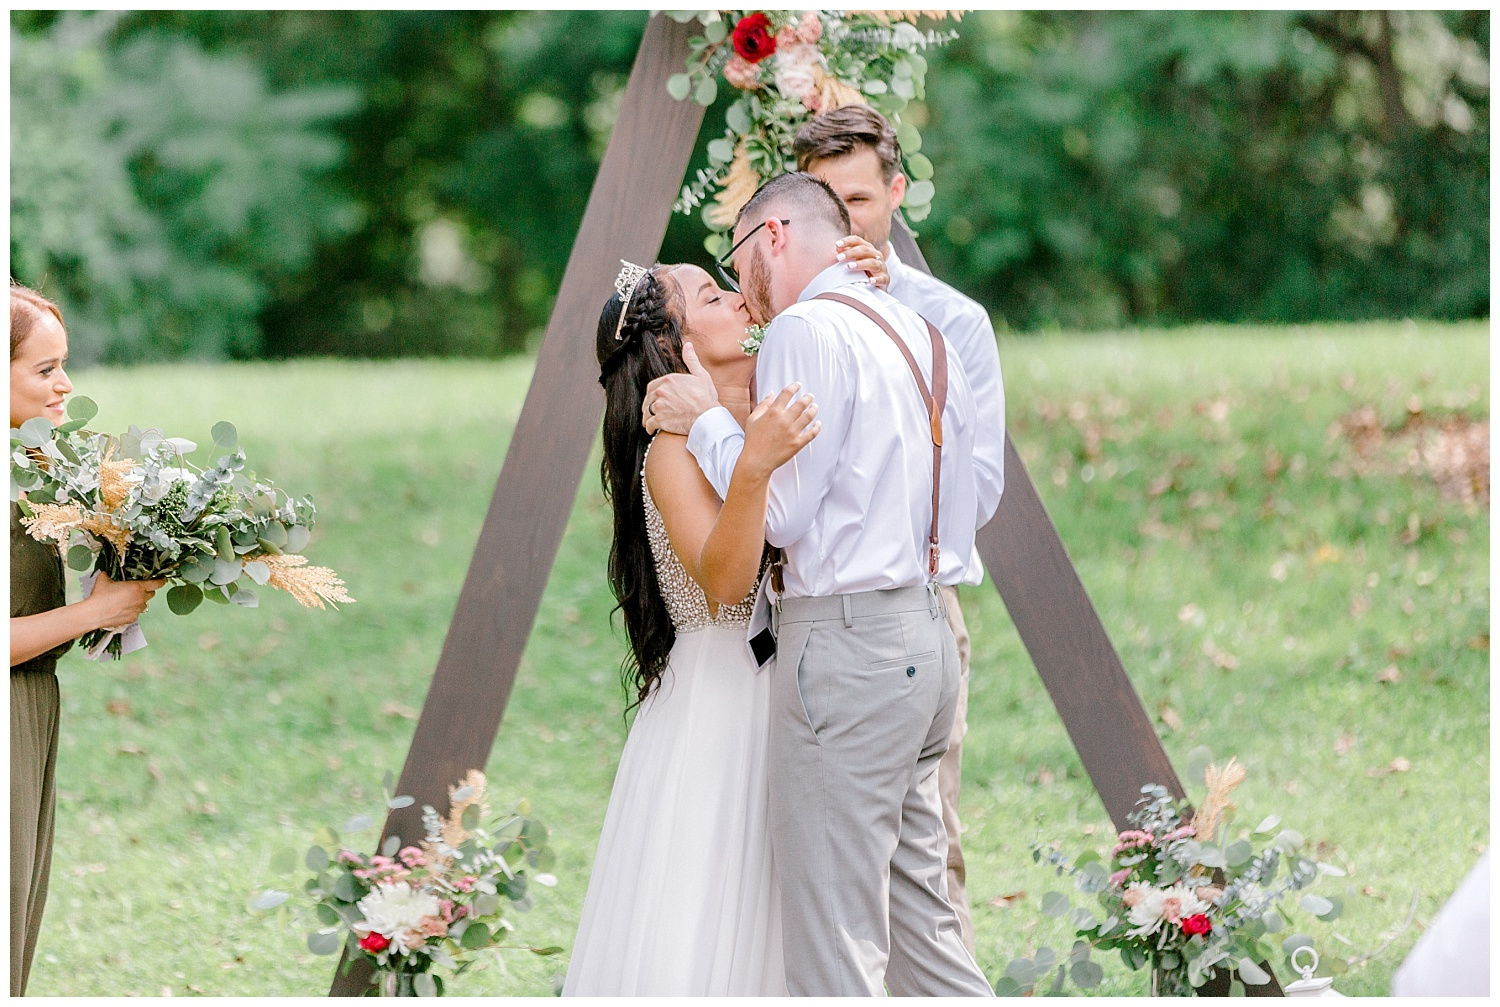 Olive green and white rustic barn wedding at burnside plantation in bethlehem pennsylvania by PA based destination wedding and lifestyle photographer Lytle photography (47).jpg